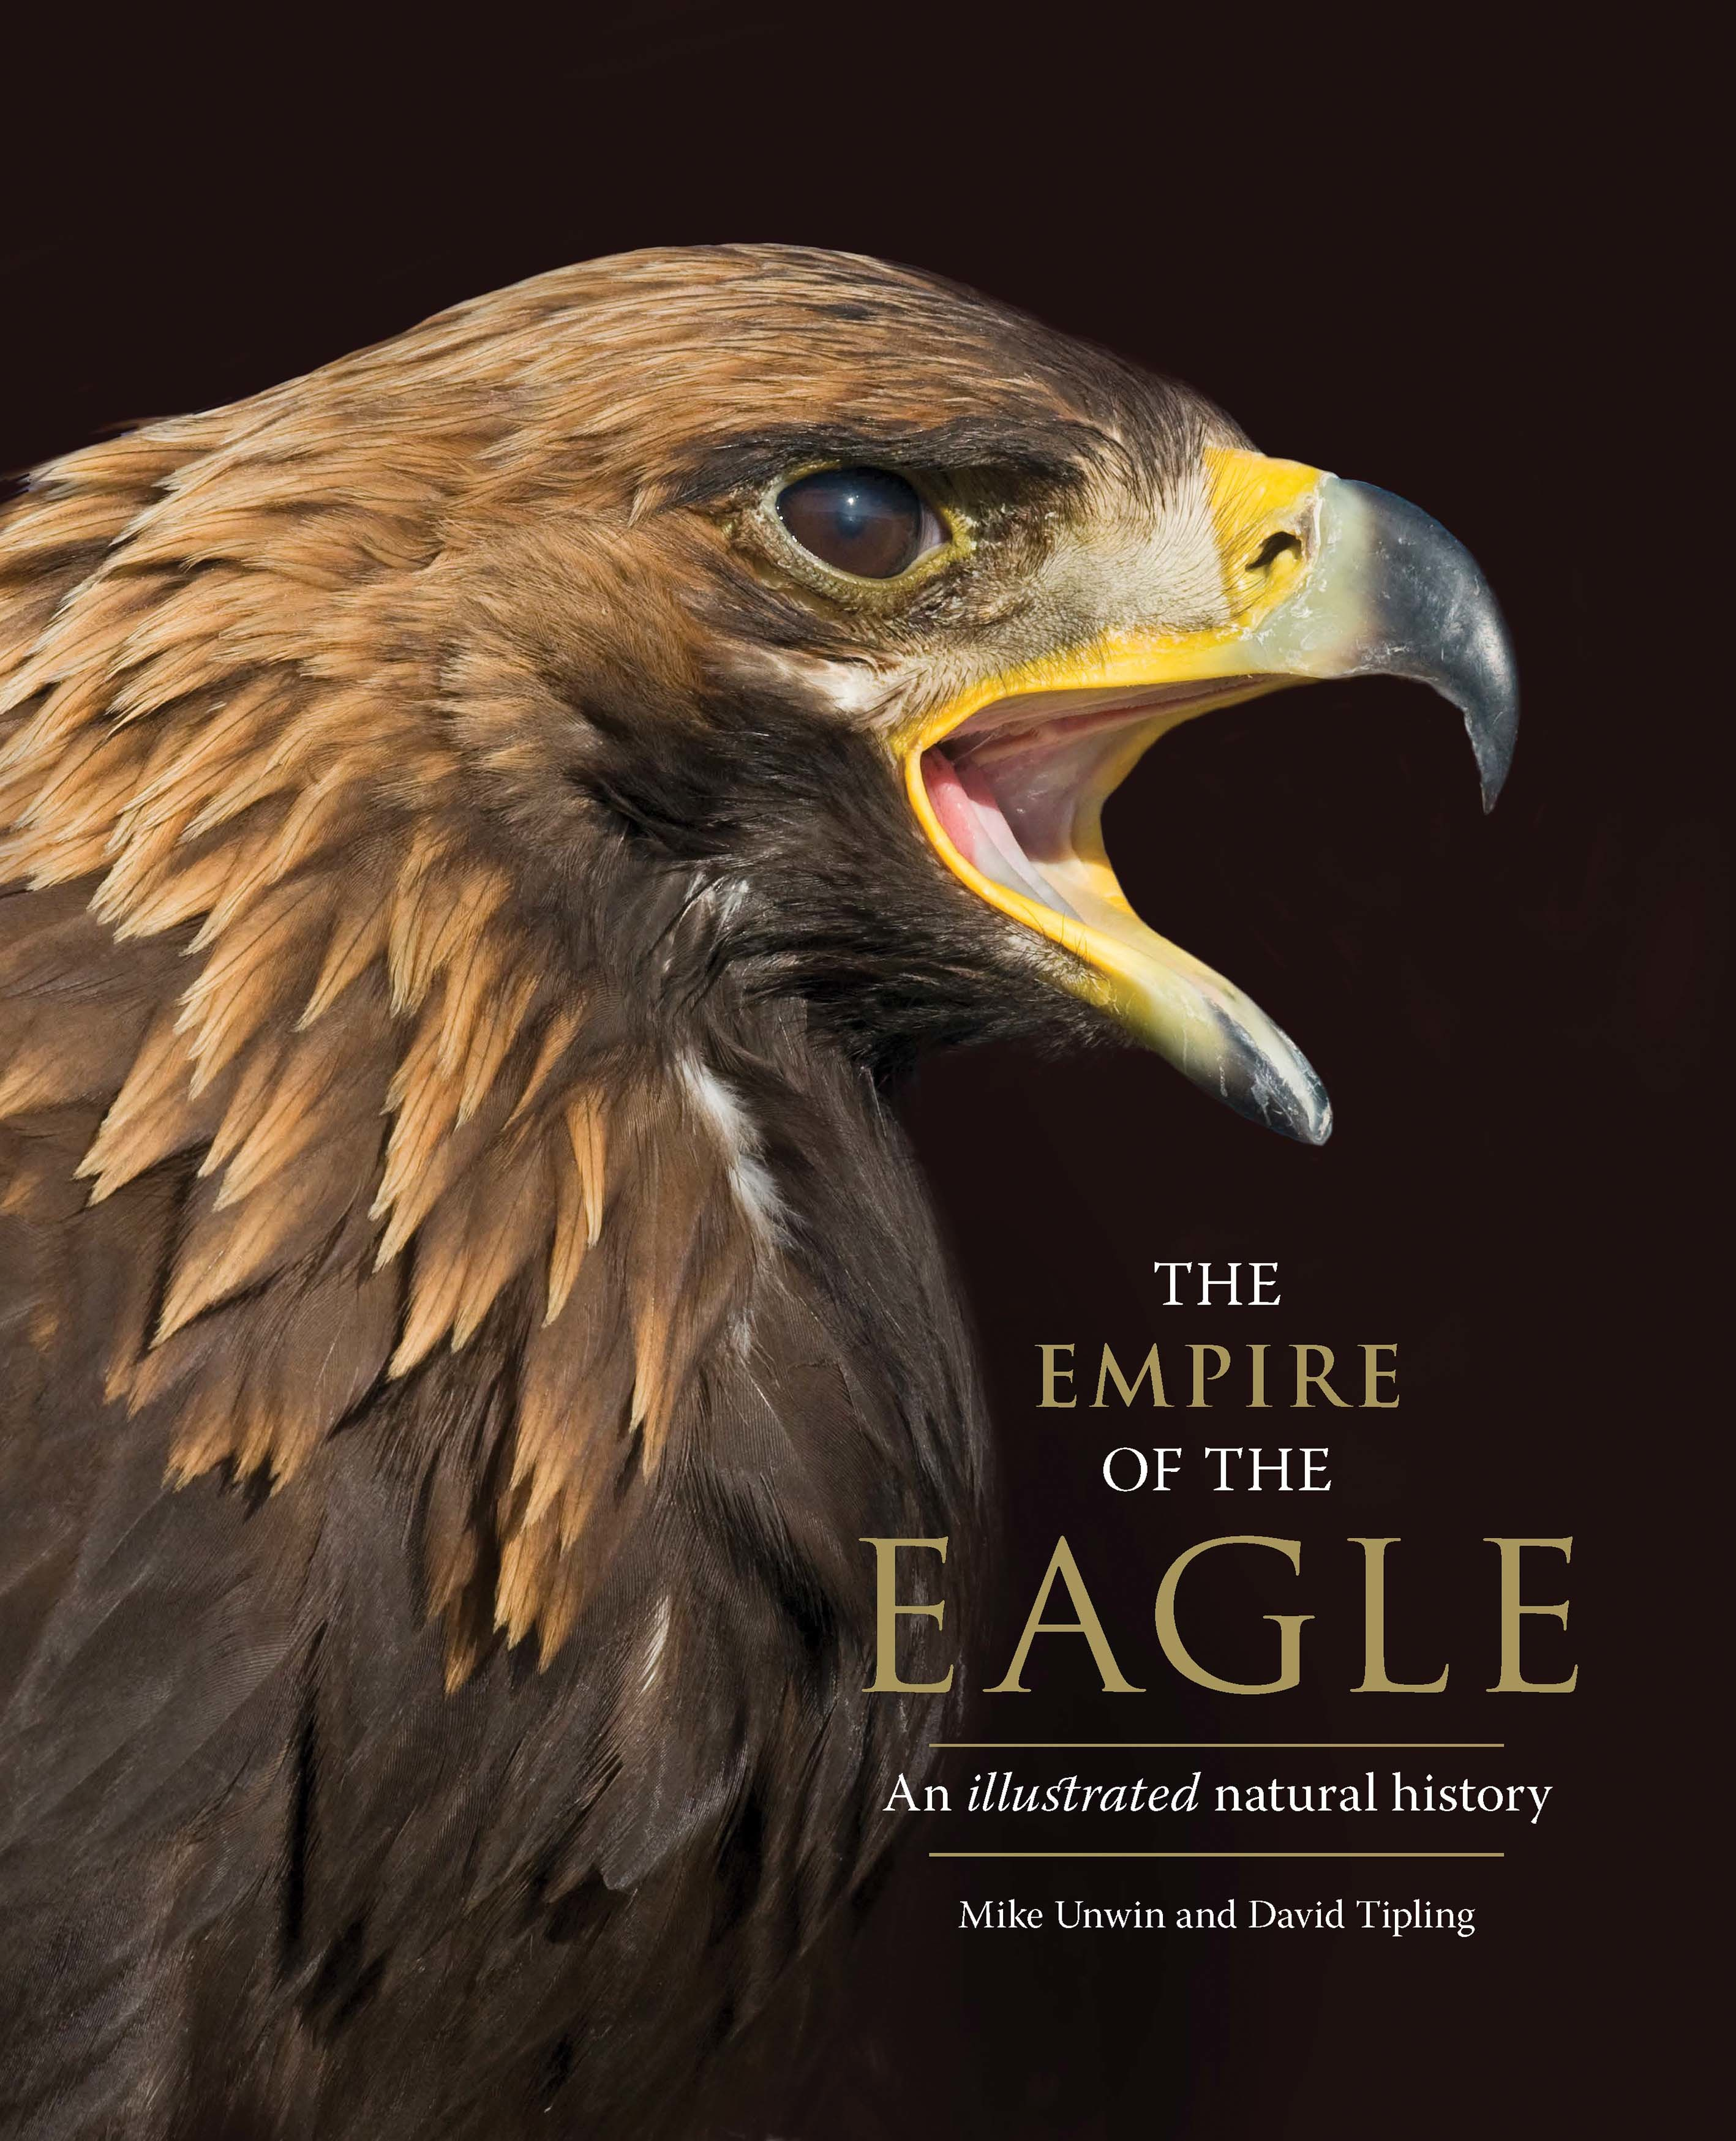 The Empire of the Eagle: An Illustrated Natural History